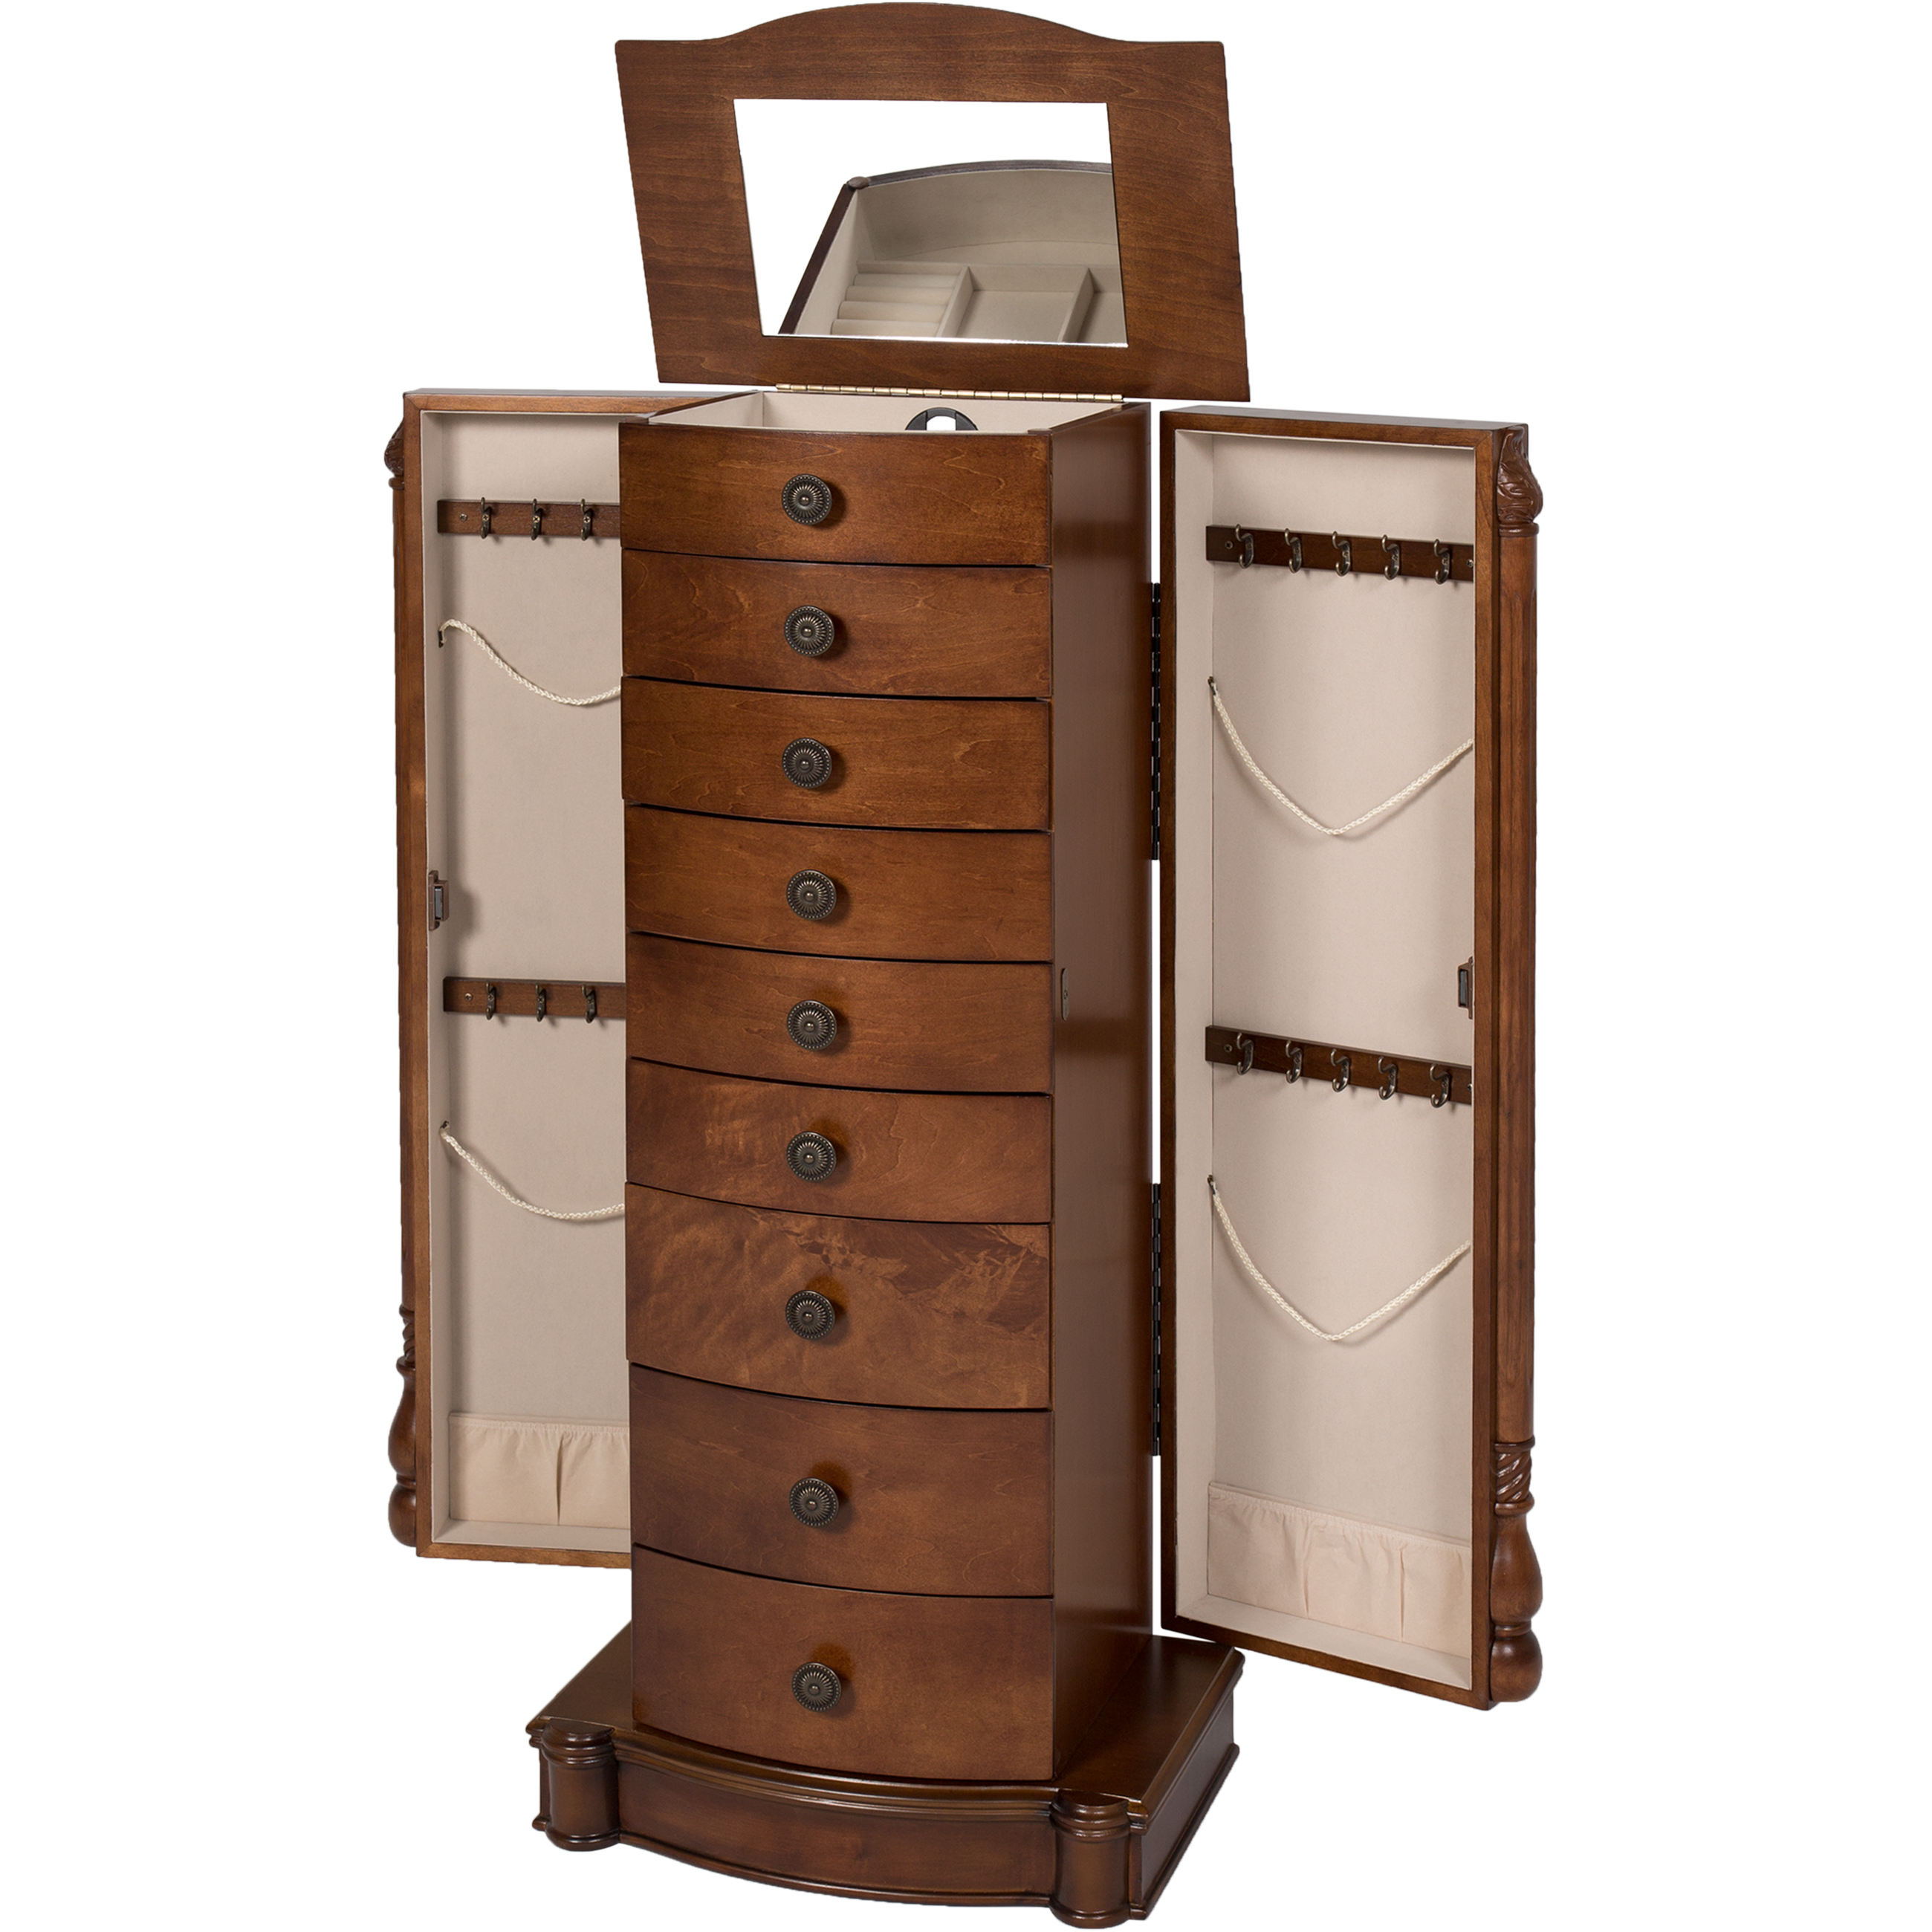 Beau Armoire Jewelry Cabinet Box Storage Chest Stand Organizer Necklace Wood  Walnut   Walmart.com